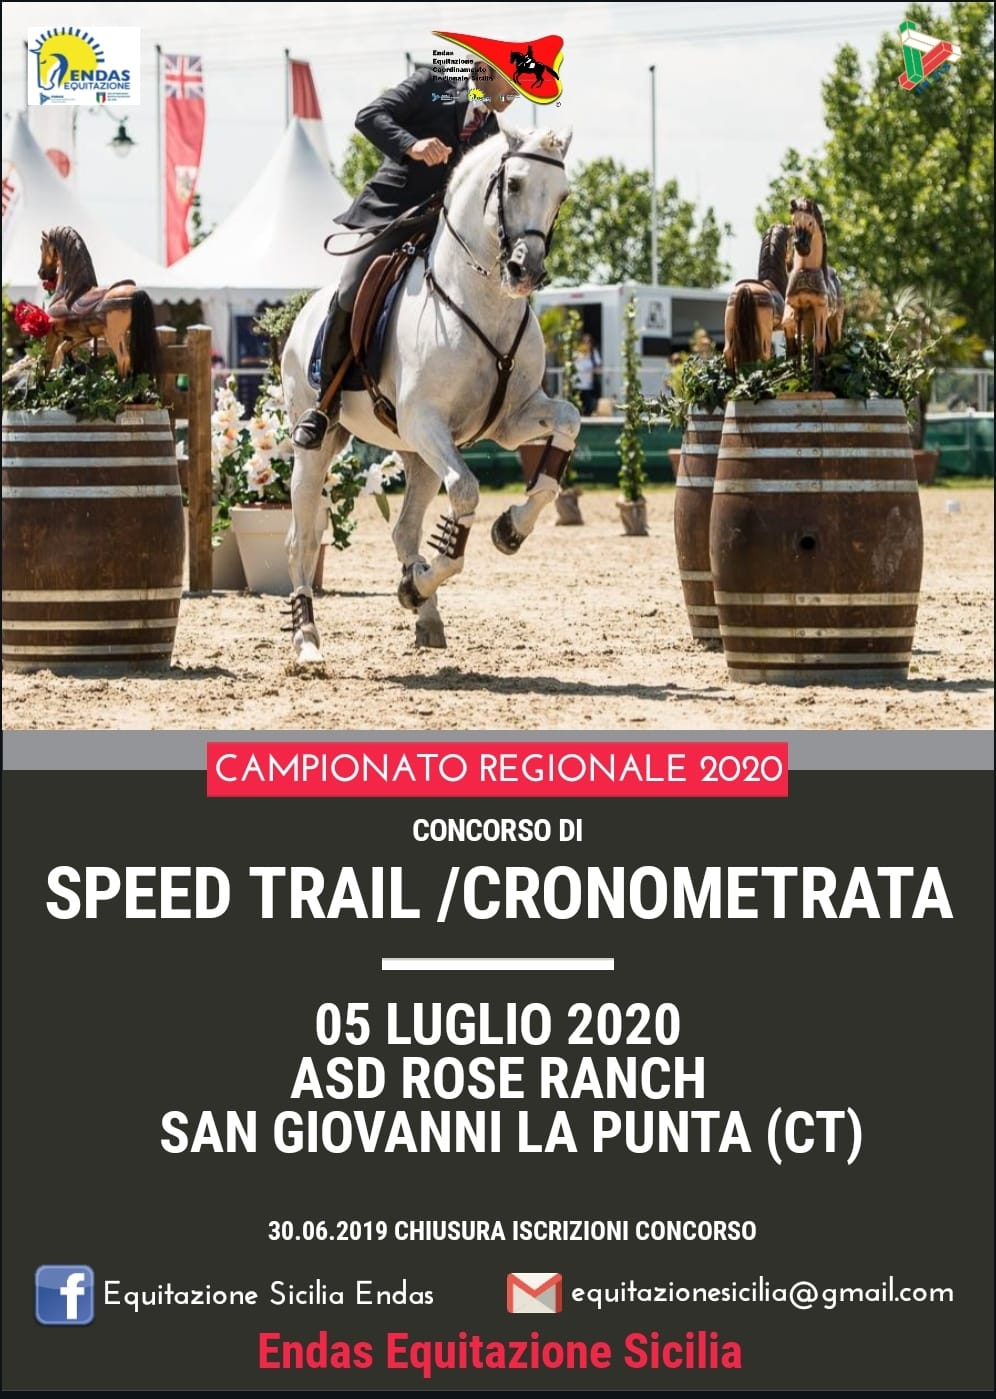 Campionato regionale Speed Trail/Cronometrata 2020